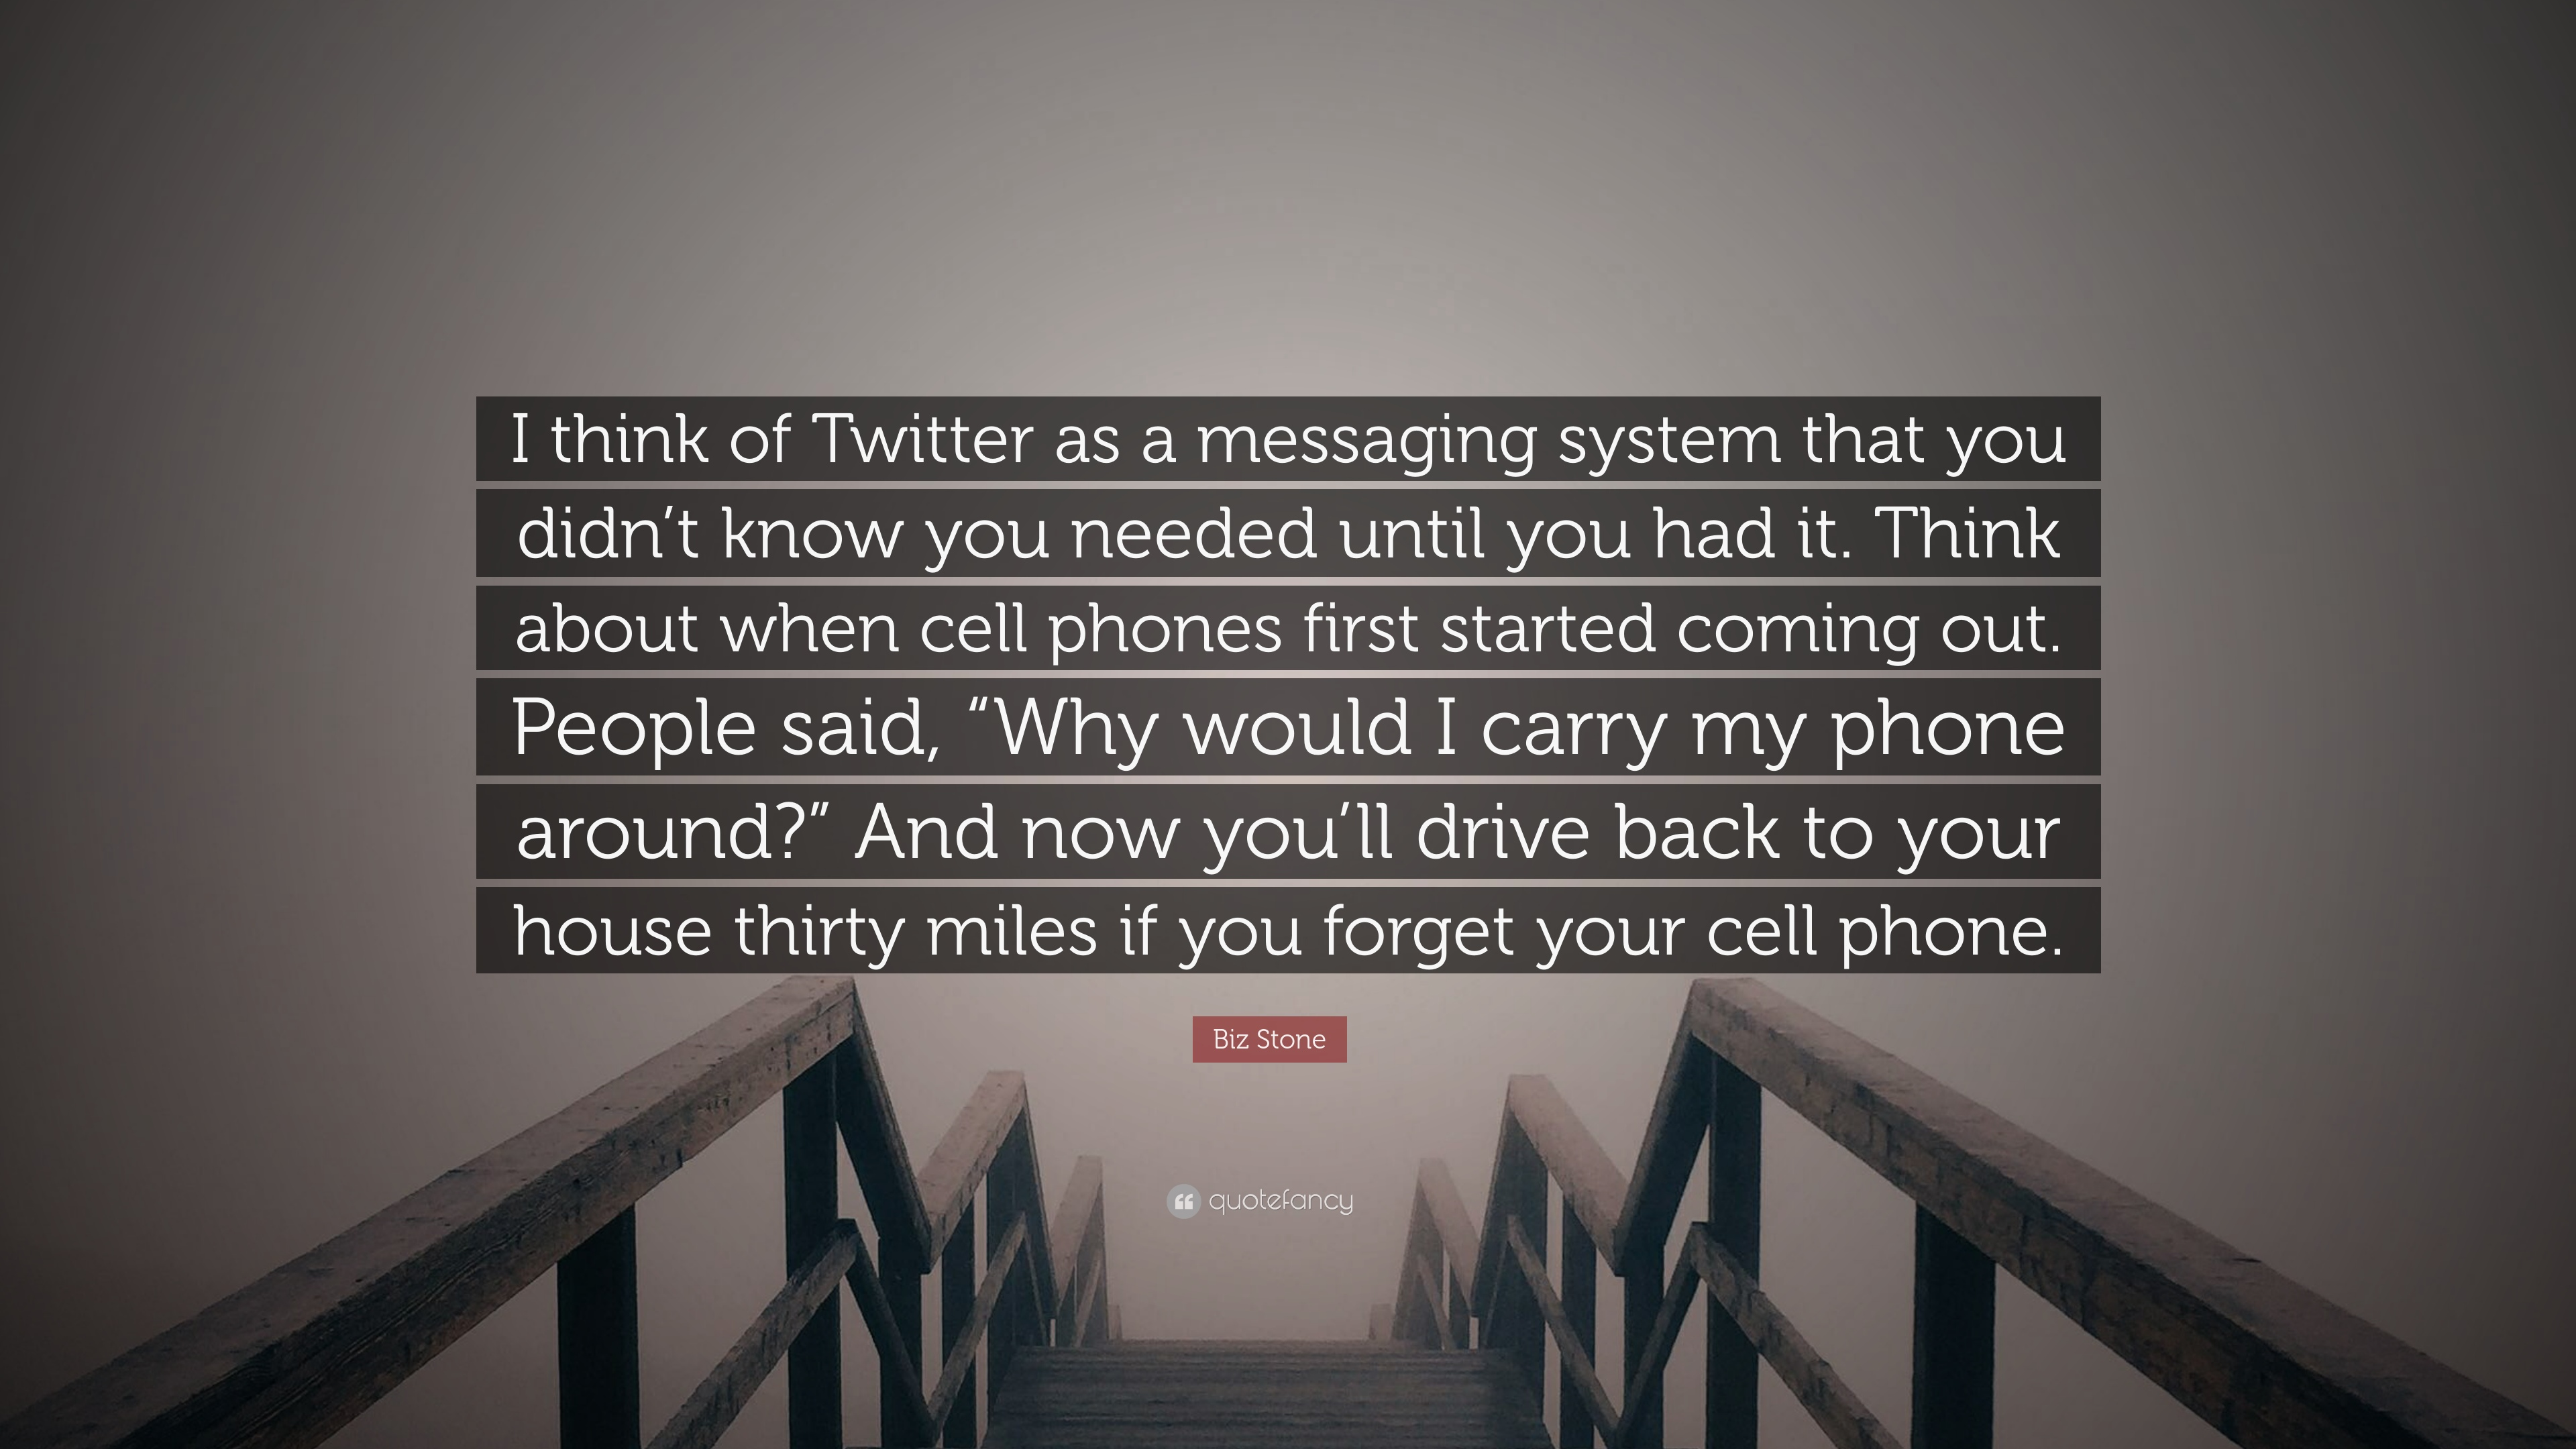 essay on mobile phone with quotes Sometimes, the mobile users are so grossly engrossed in their talk that they  forget the world, much to the annoyance of those who are around.